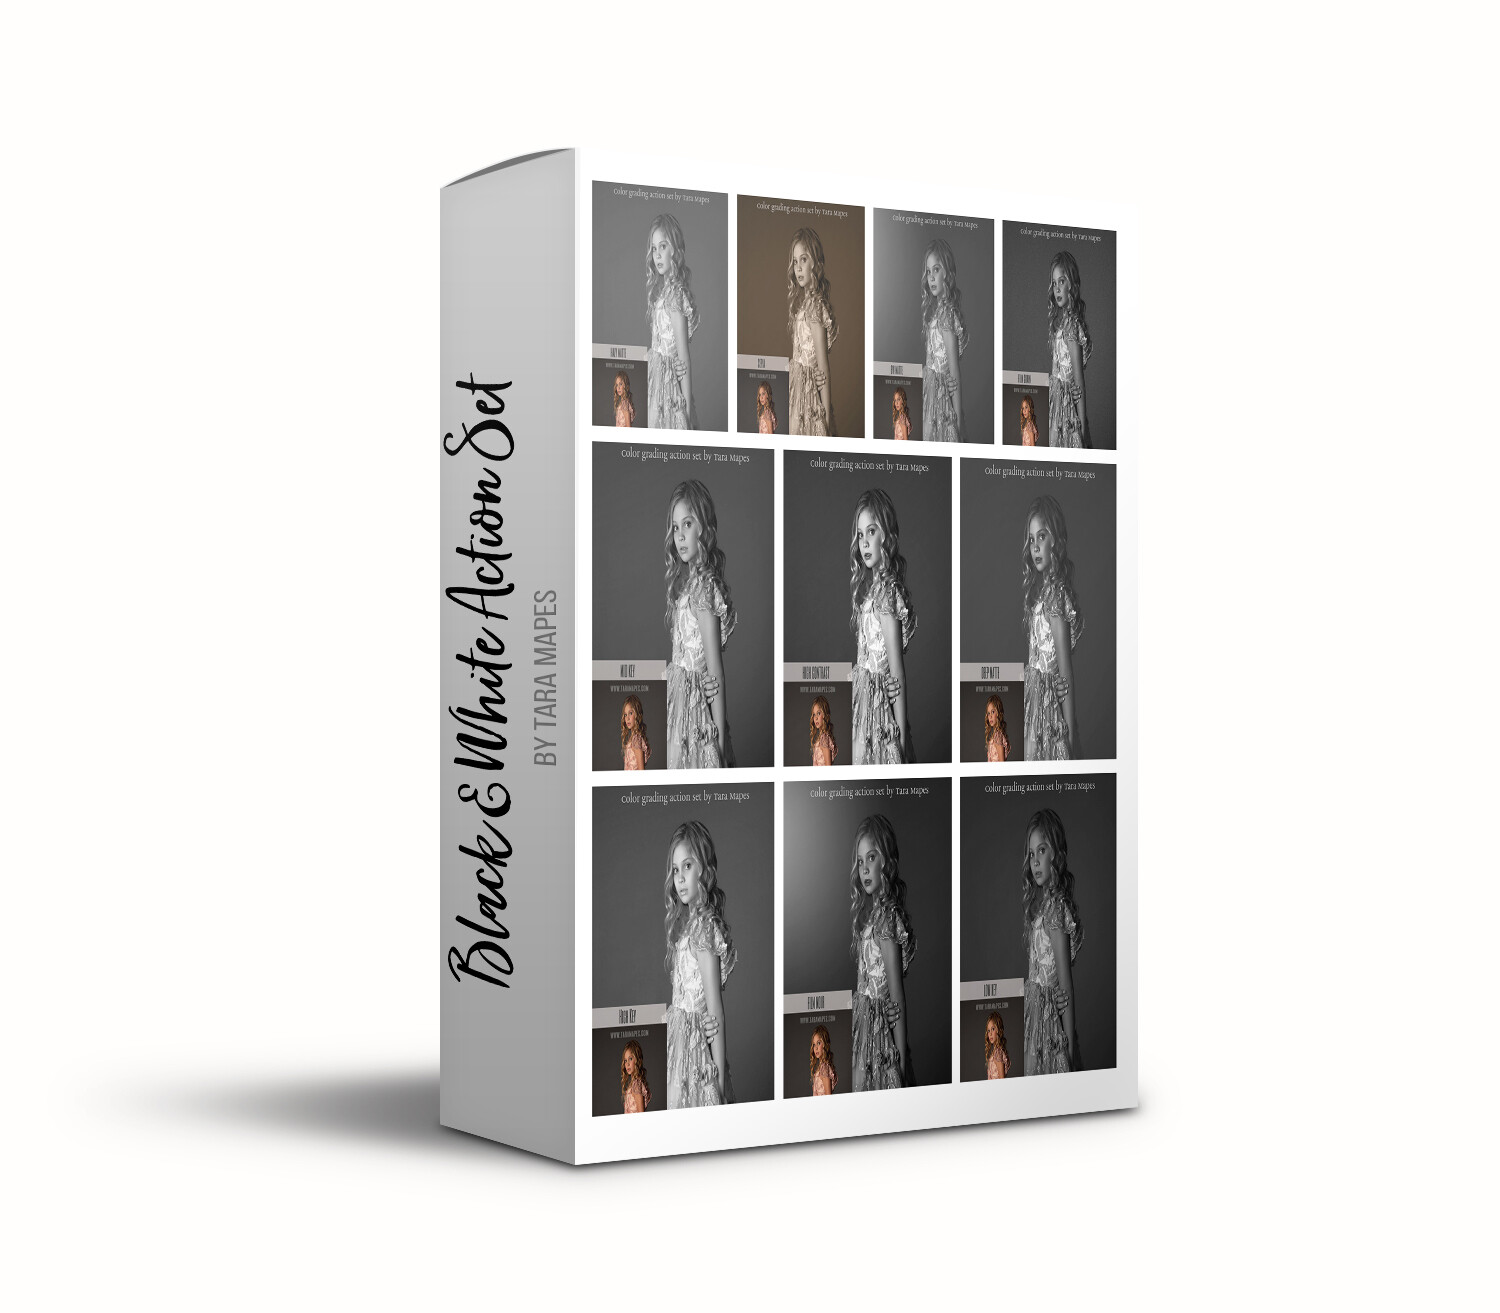 Black and White Photoshop Action Set by Tara Mapes -  Turn Your Photos into Black and White Masterpieces - Photoshop Action Set by Tara Mapes